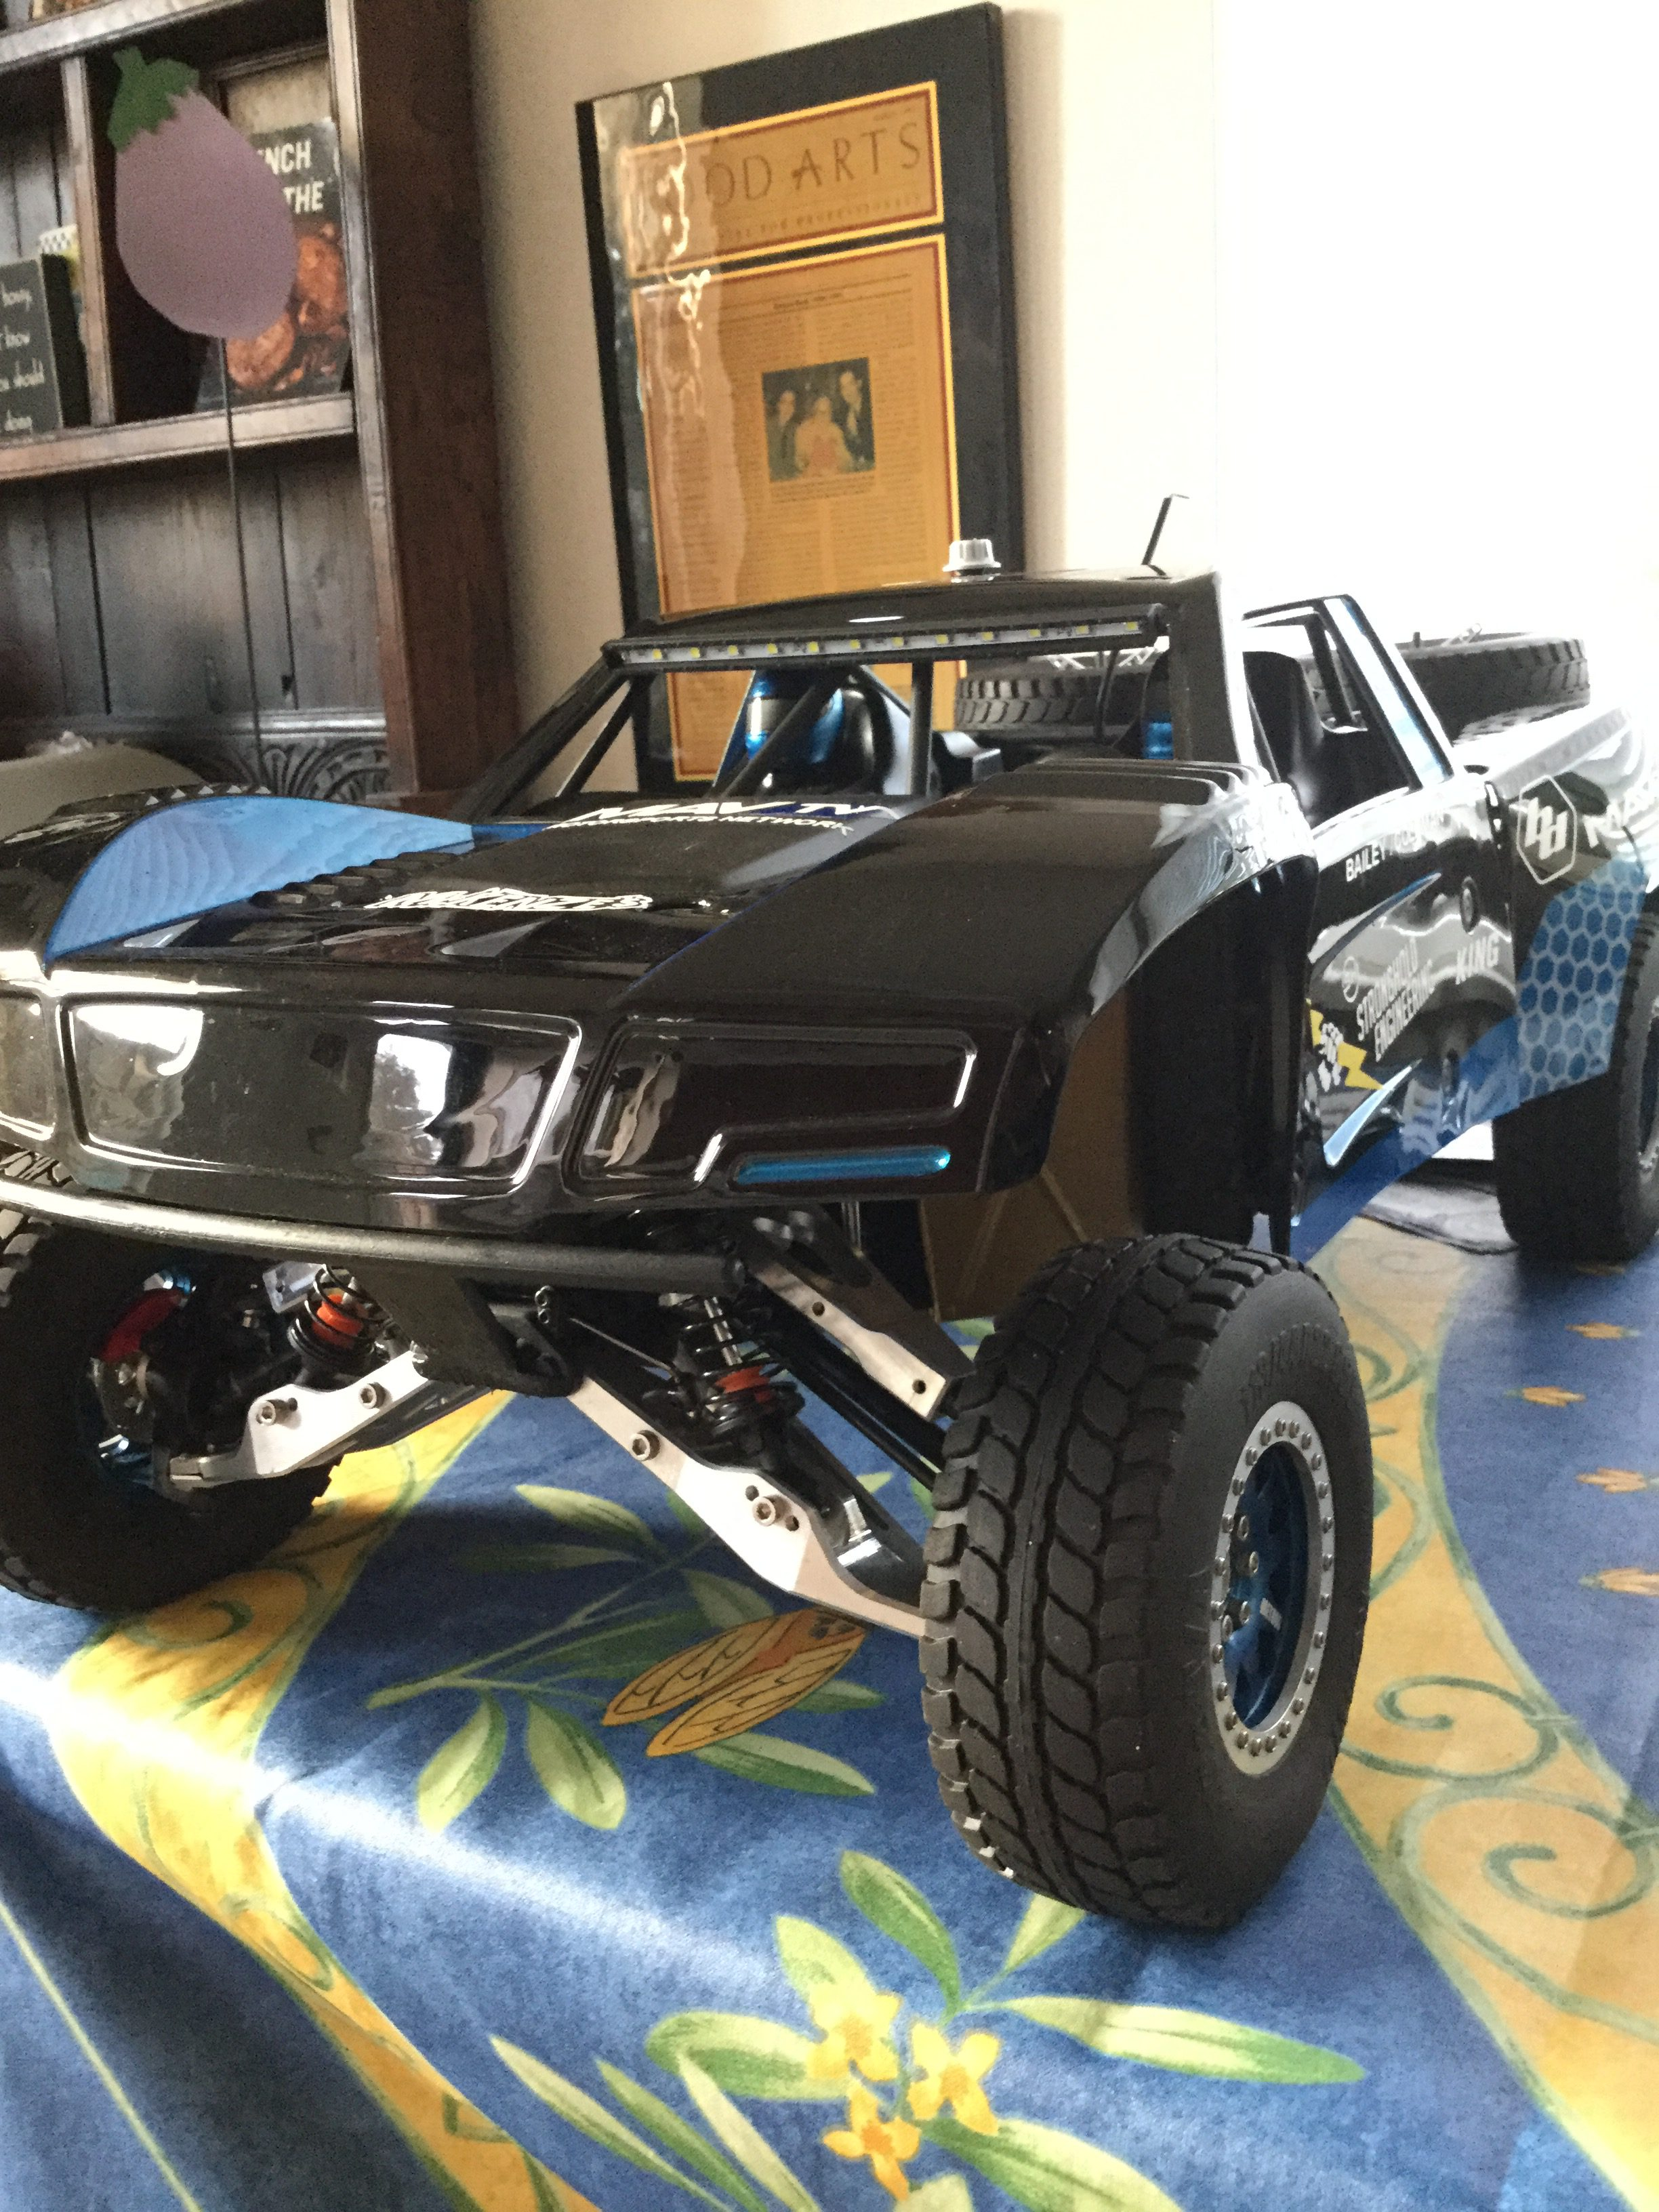 losi trophy truck with Losi Baja Rey on Mammuth Rewarron 13 Scale Truck Chassis Pictures likewise Losi Super Baja Rey 1 6 Rc Desert Trophy Truck together with Losi Xxl 2 Brushless Los04004 furthermore Serpent 18 Cobra Buggy Rtr With Novarossi Power in addition Losi Baja Rey.